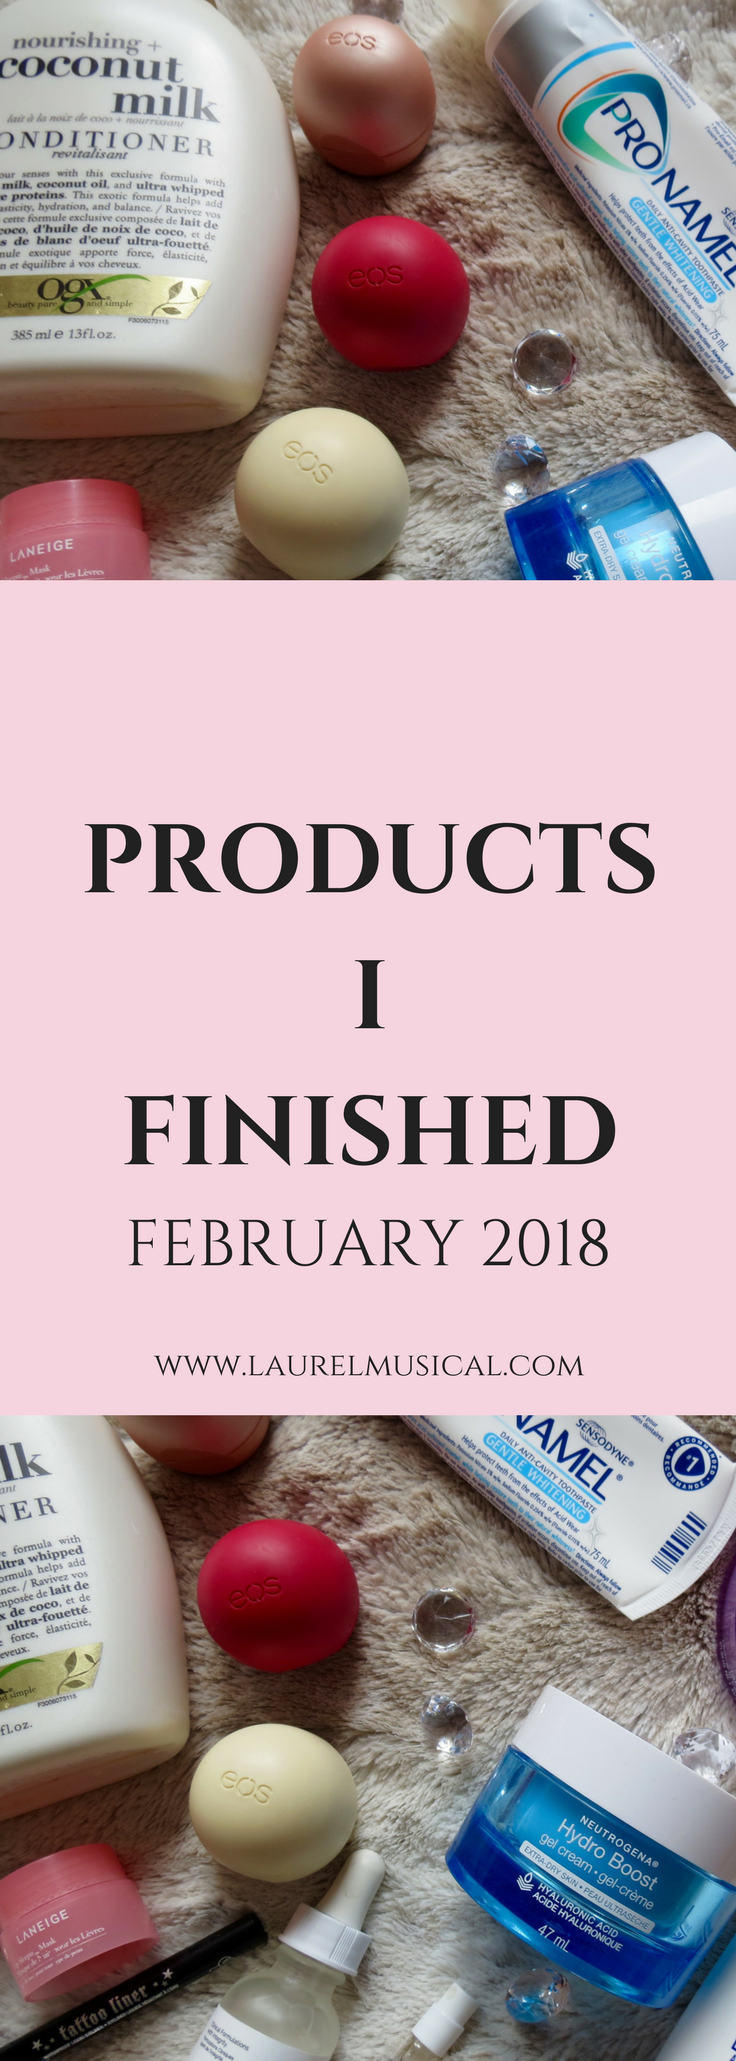 Products I Finished February 2018 Cream for dry skin